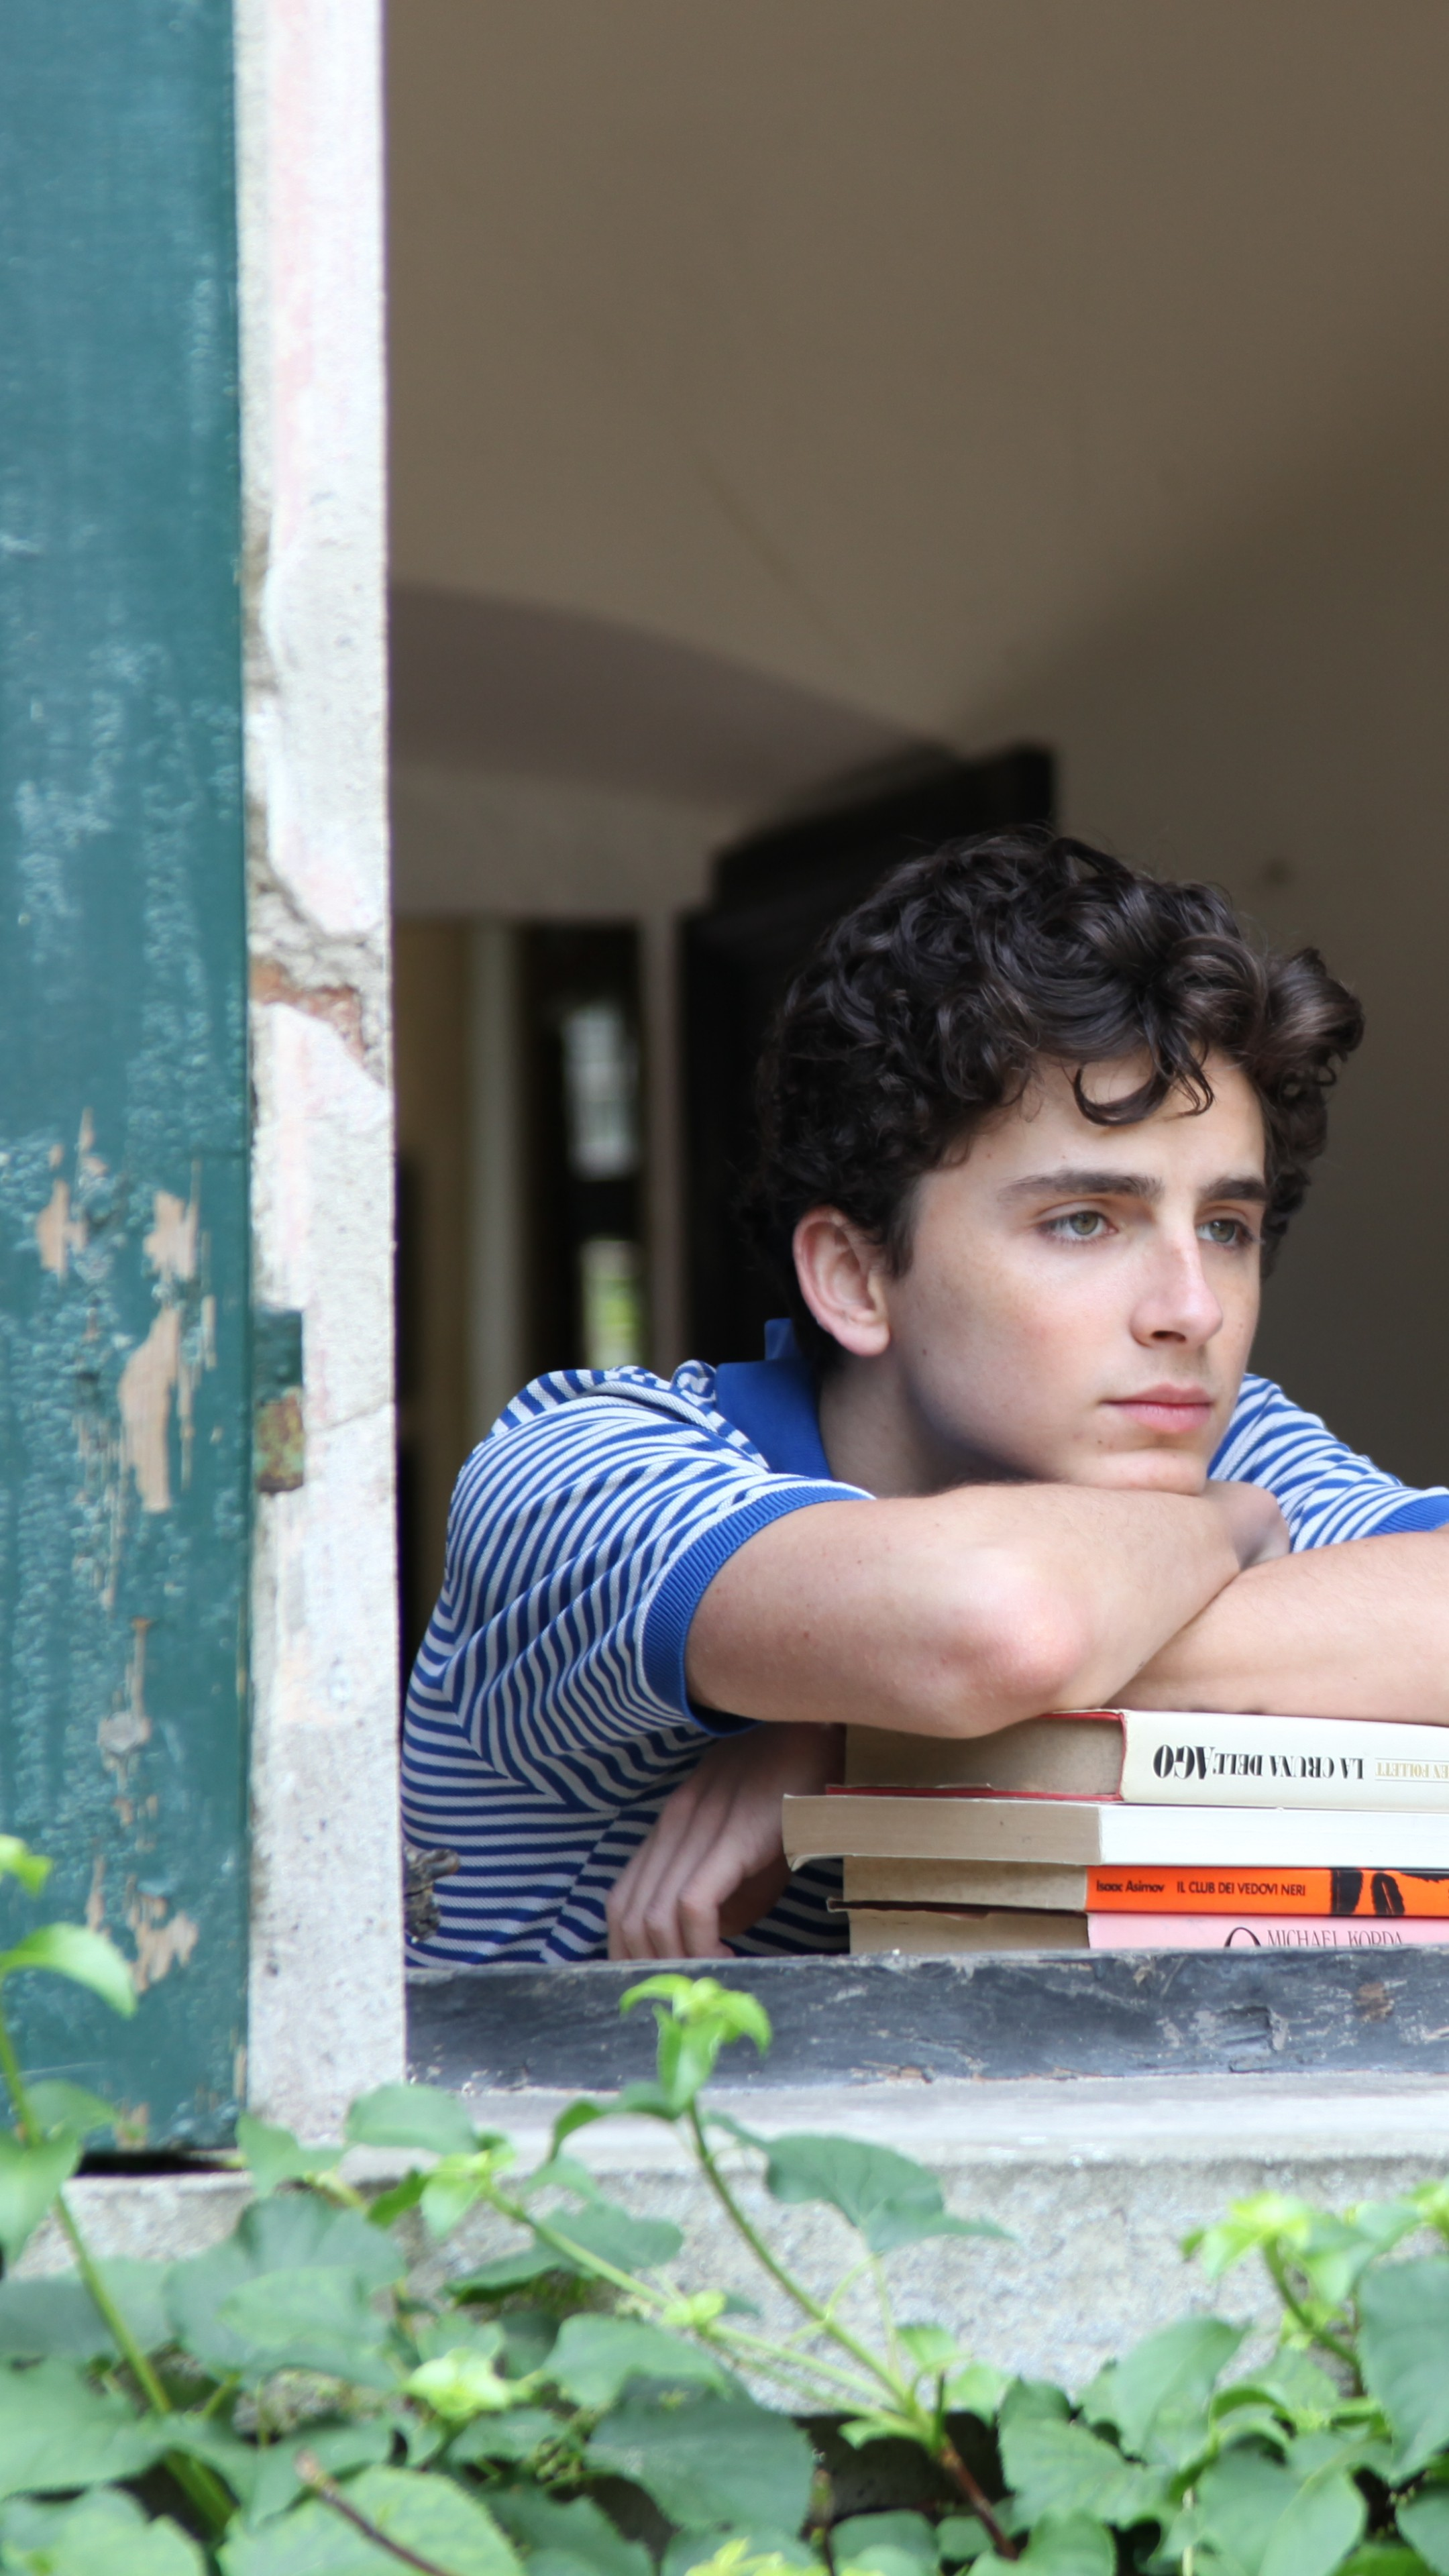 Cool Sun Quotes Wallpaper Wallpaper Call Me By Your Name Timothee Chalamet 5k